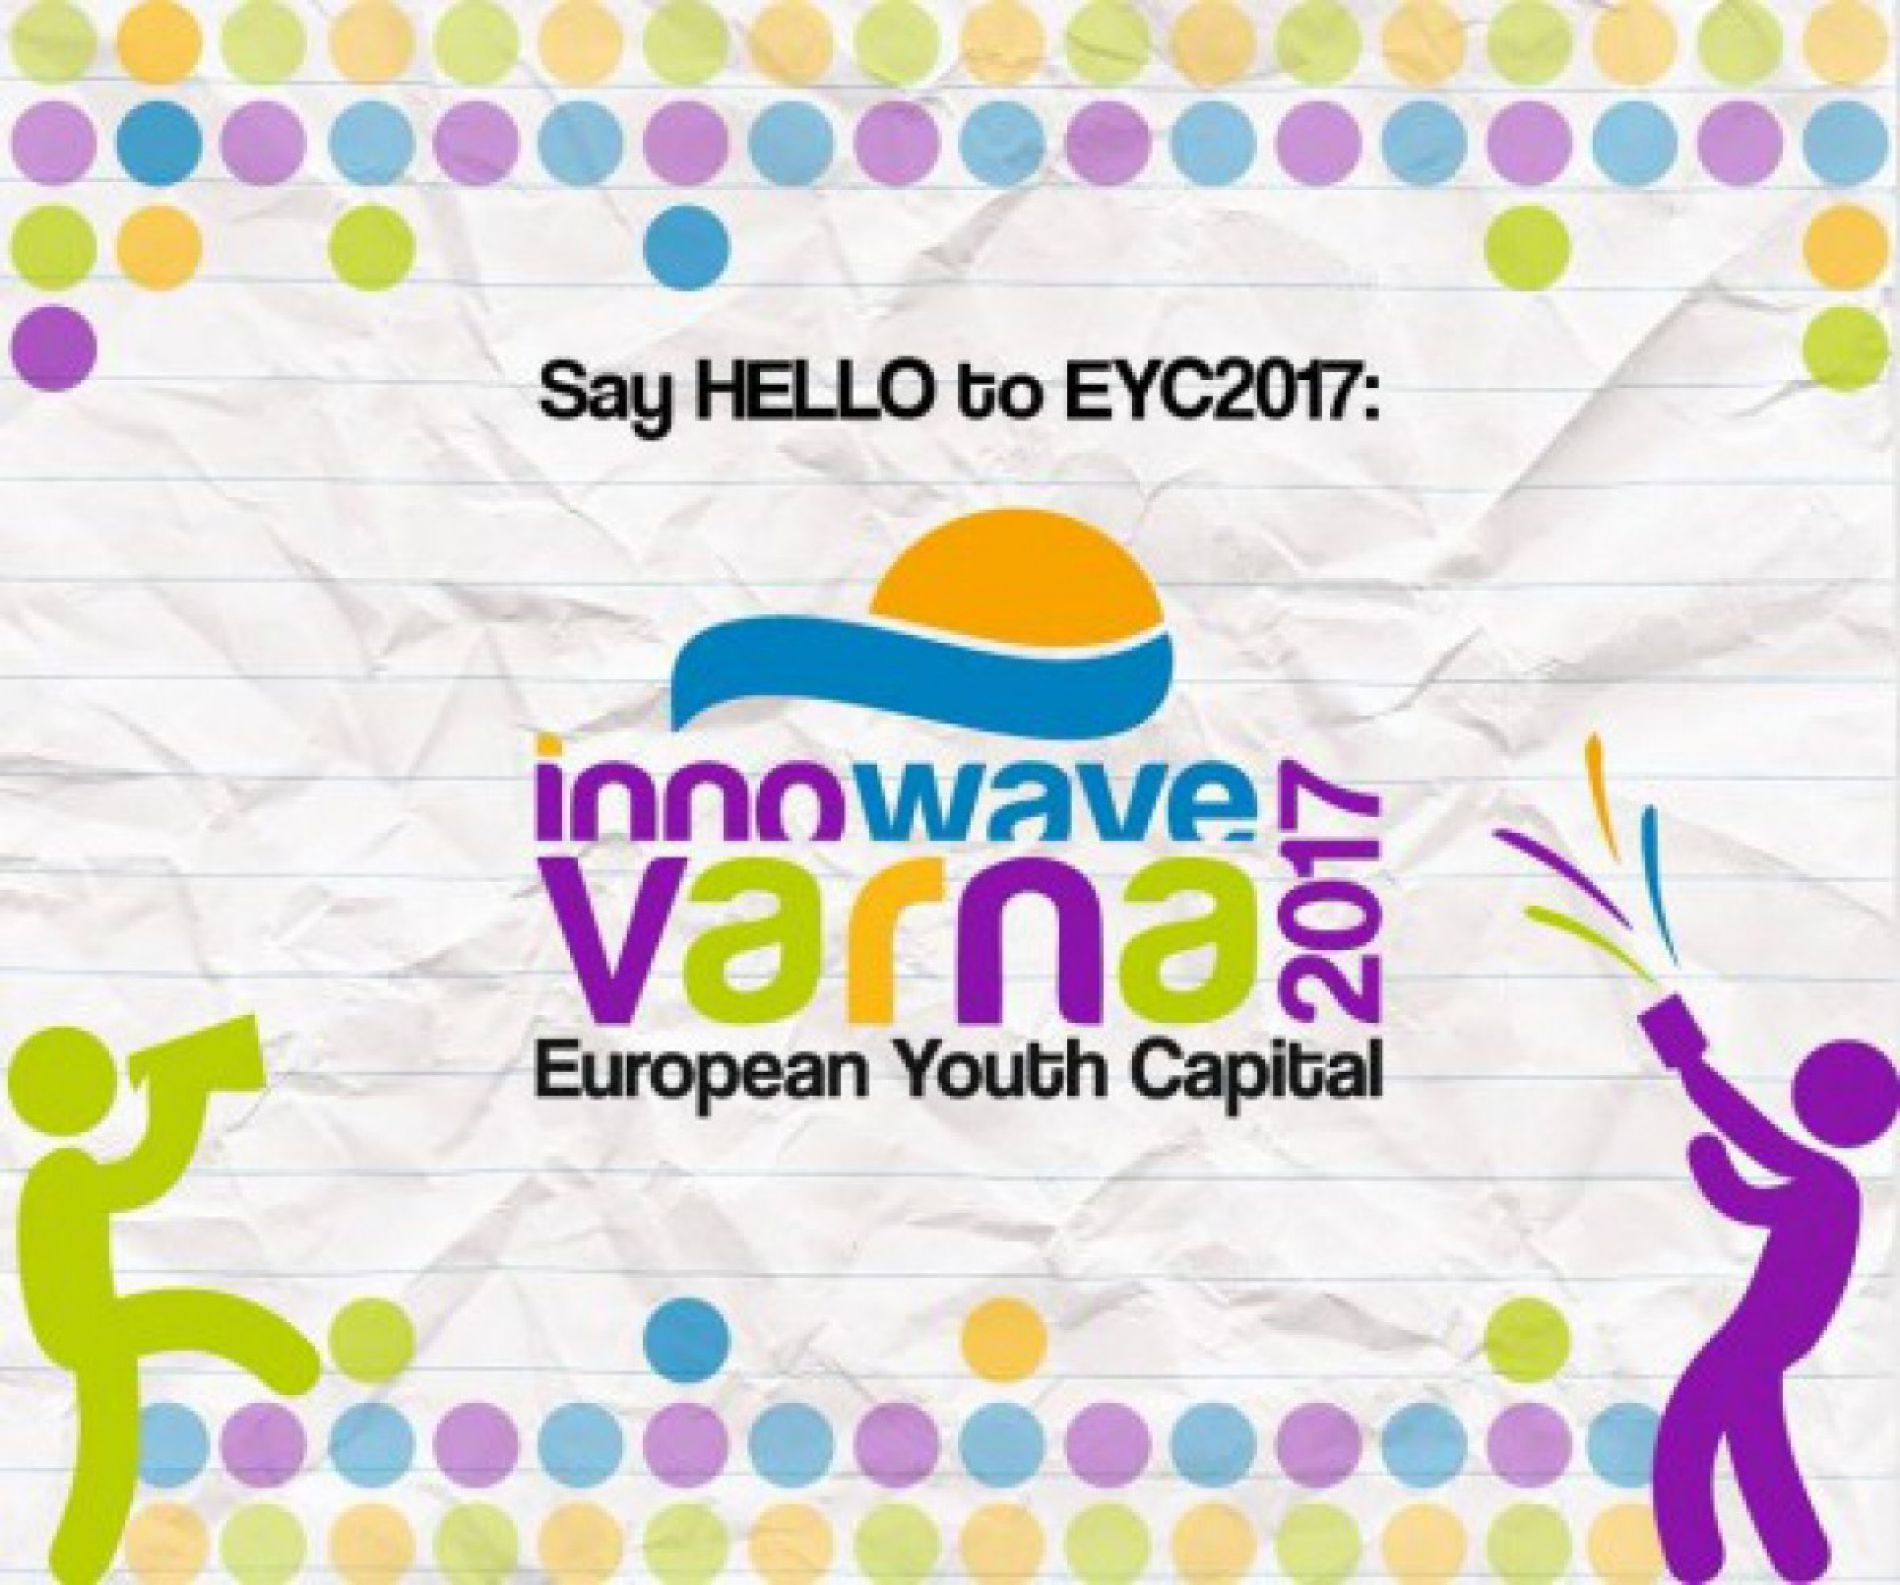 Varna will be the European Youth Capital in 2017